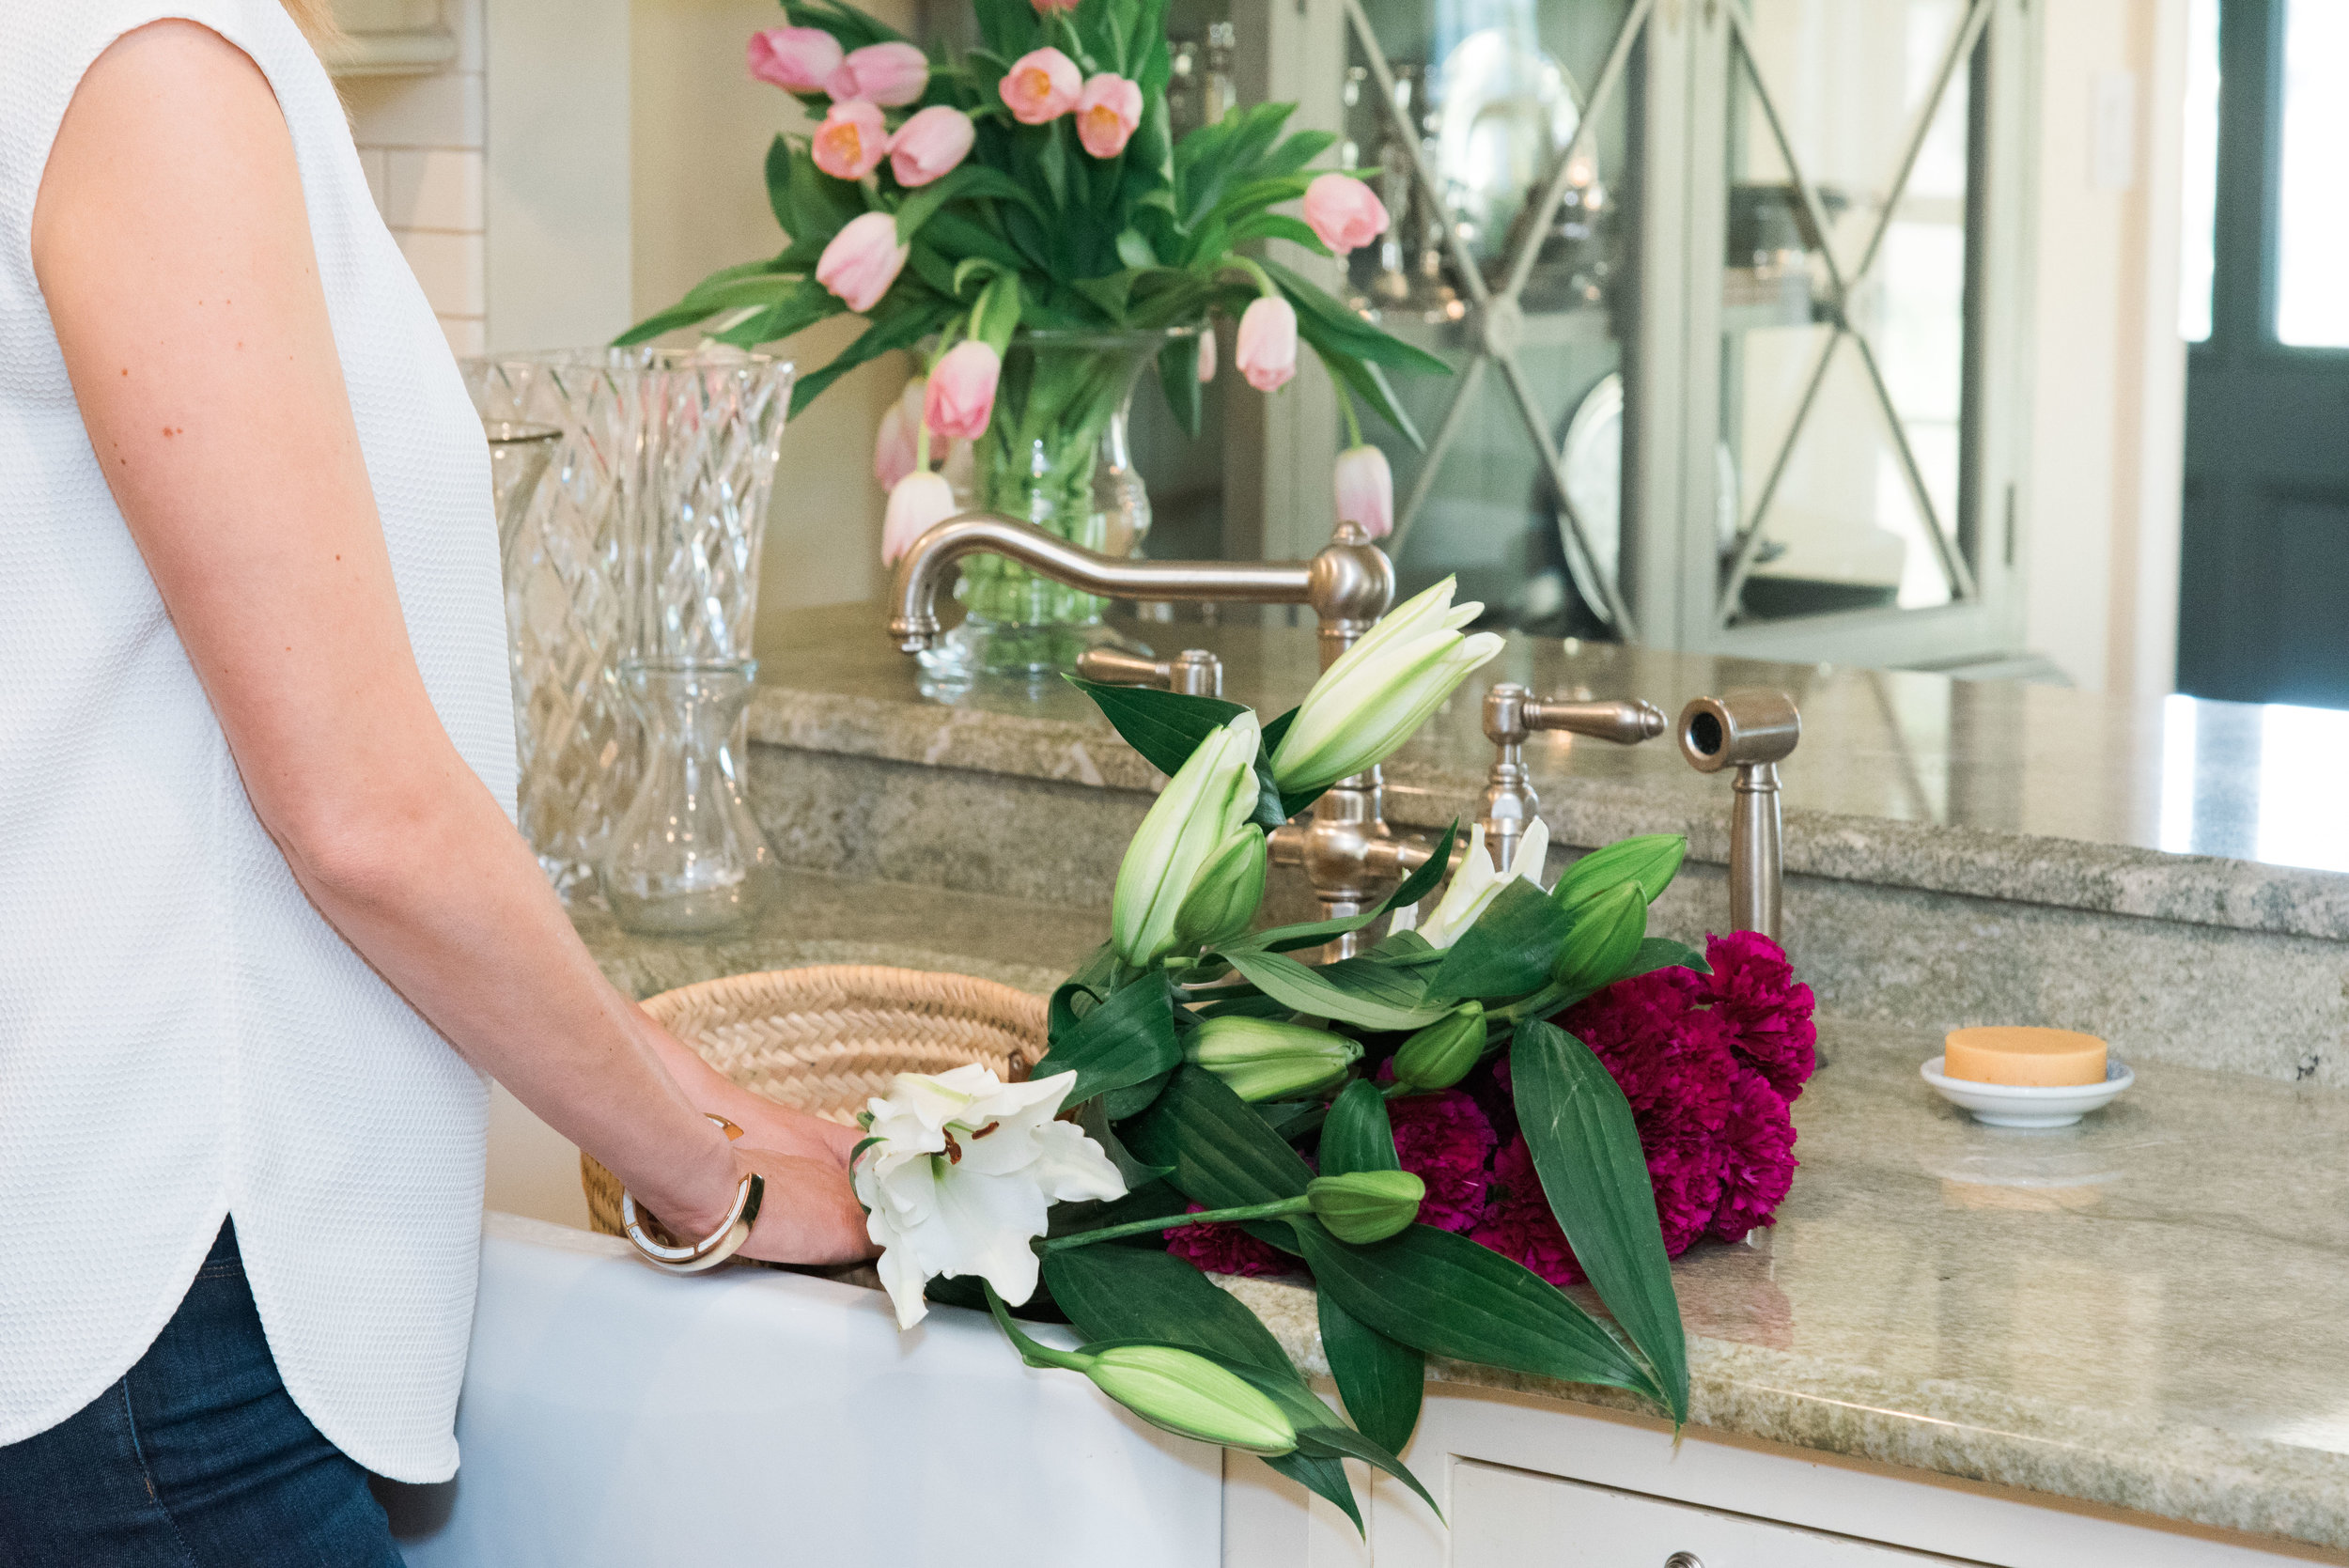 This house is all about understated elegance. To bring in color and texture, we opted for simple stems in fancy vases.